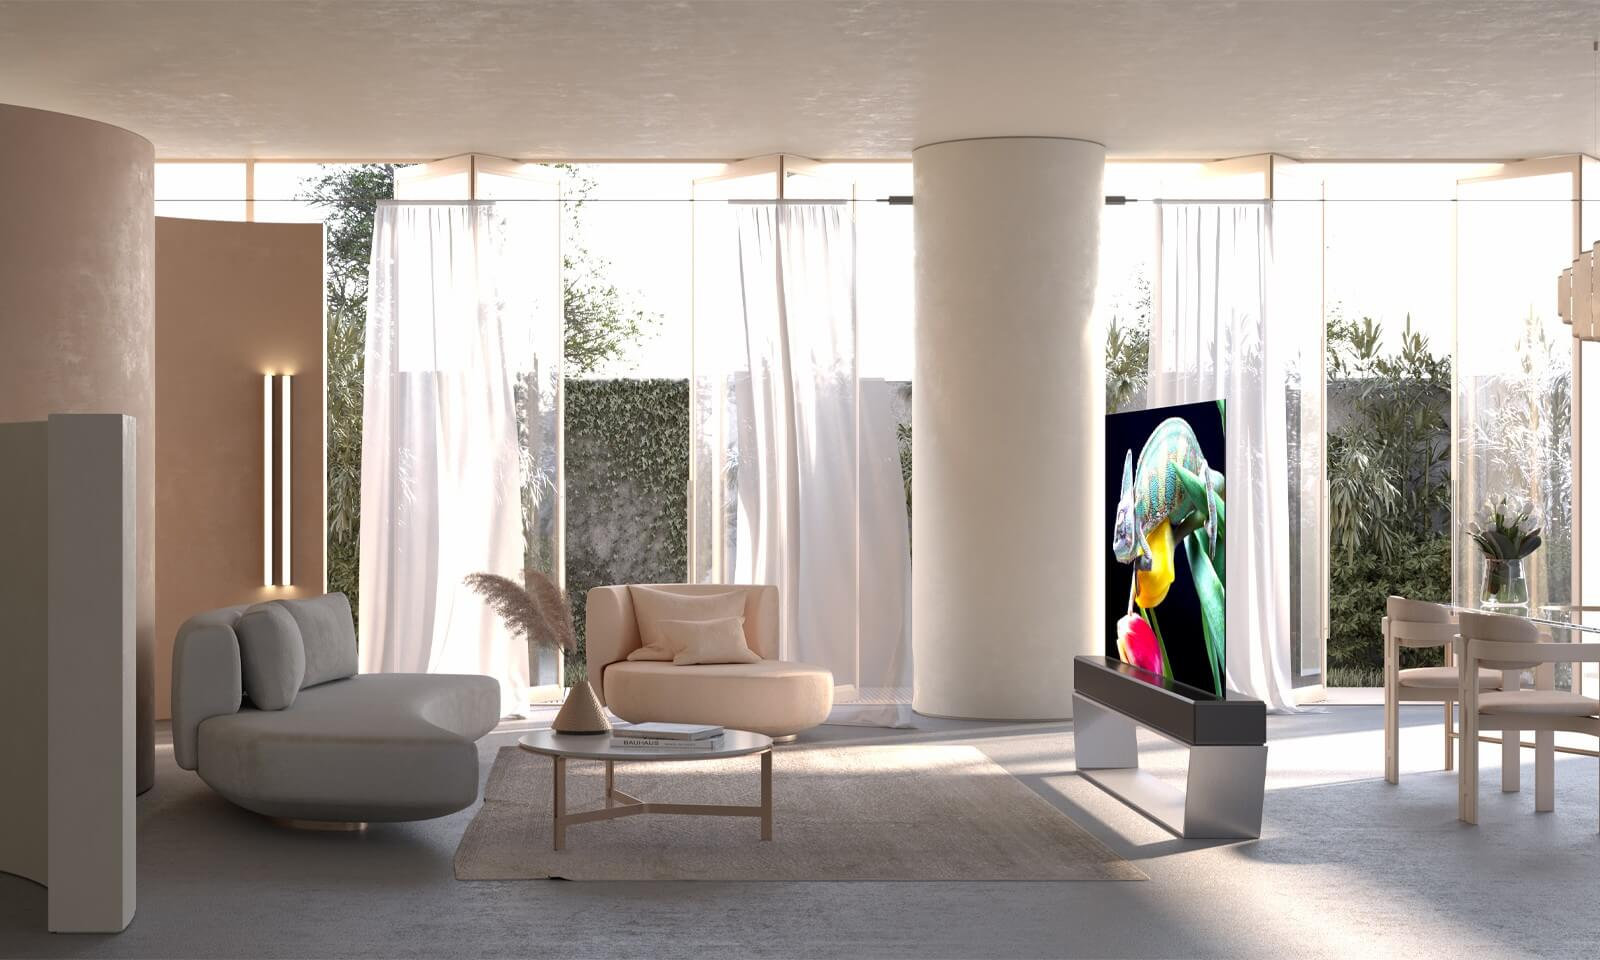 3d-product-rendering-oled